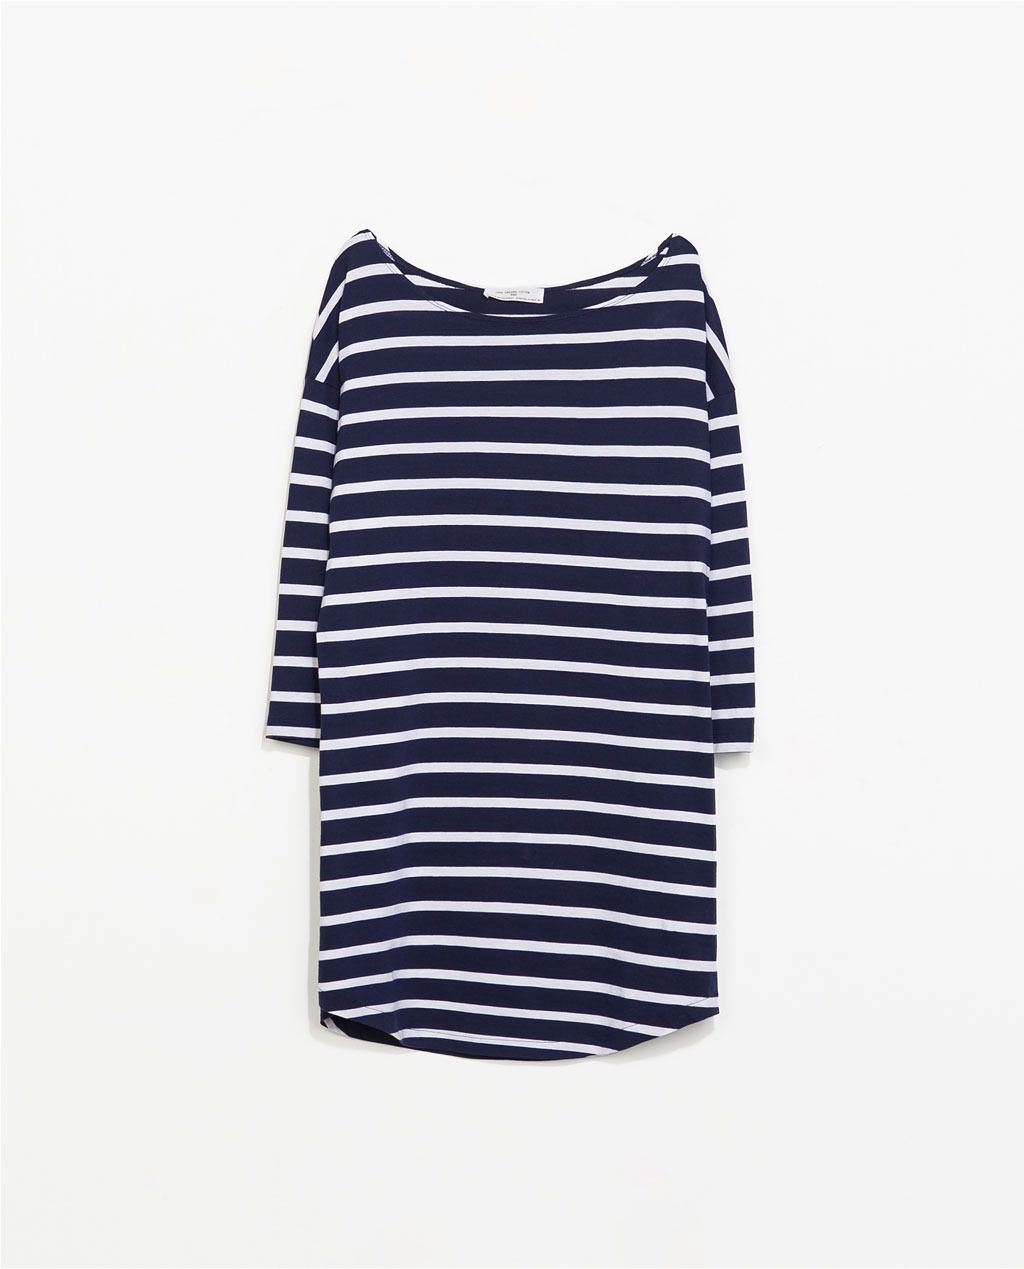 Organic Cotton Striped Dress - style: shift; length: mid thigh; neckline: round neck; fit: loose; pattern: horizontal stripes; predominant colour: navy; occasions: casual, holiday; fibres: cotton - 100%; sleeve length: long sleeve; sleeve style: standard; pattern type: fabric; texture group: jersey - stretchy/drapey; season: s/s 2014